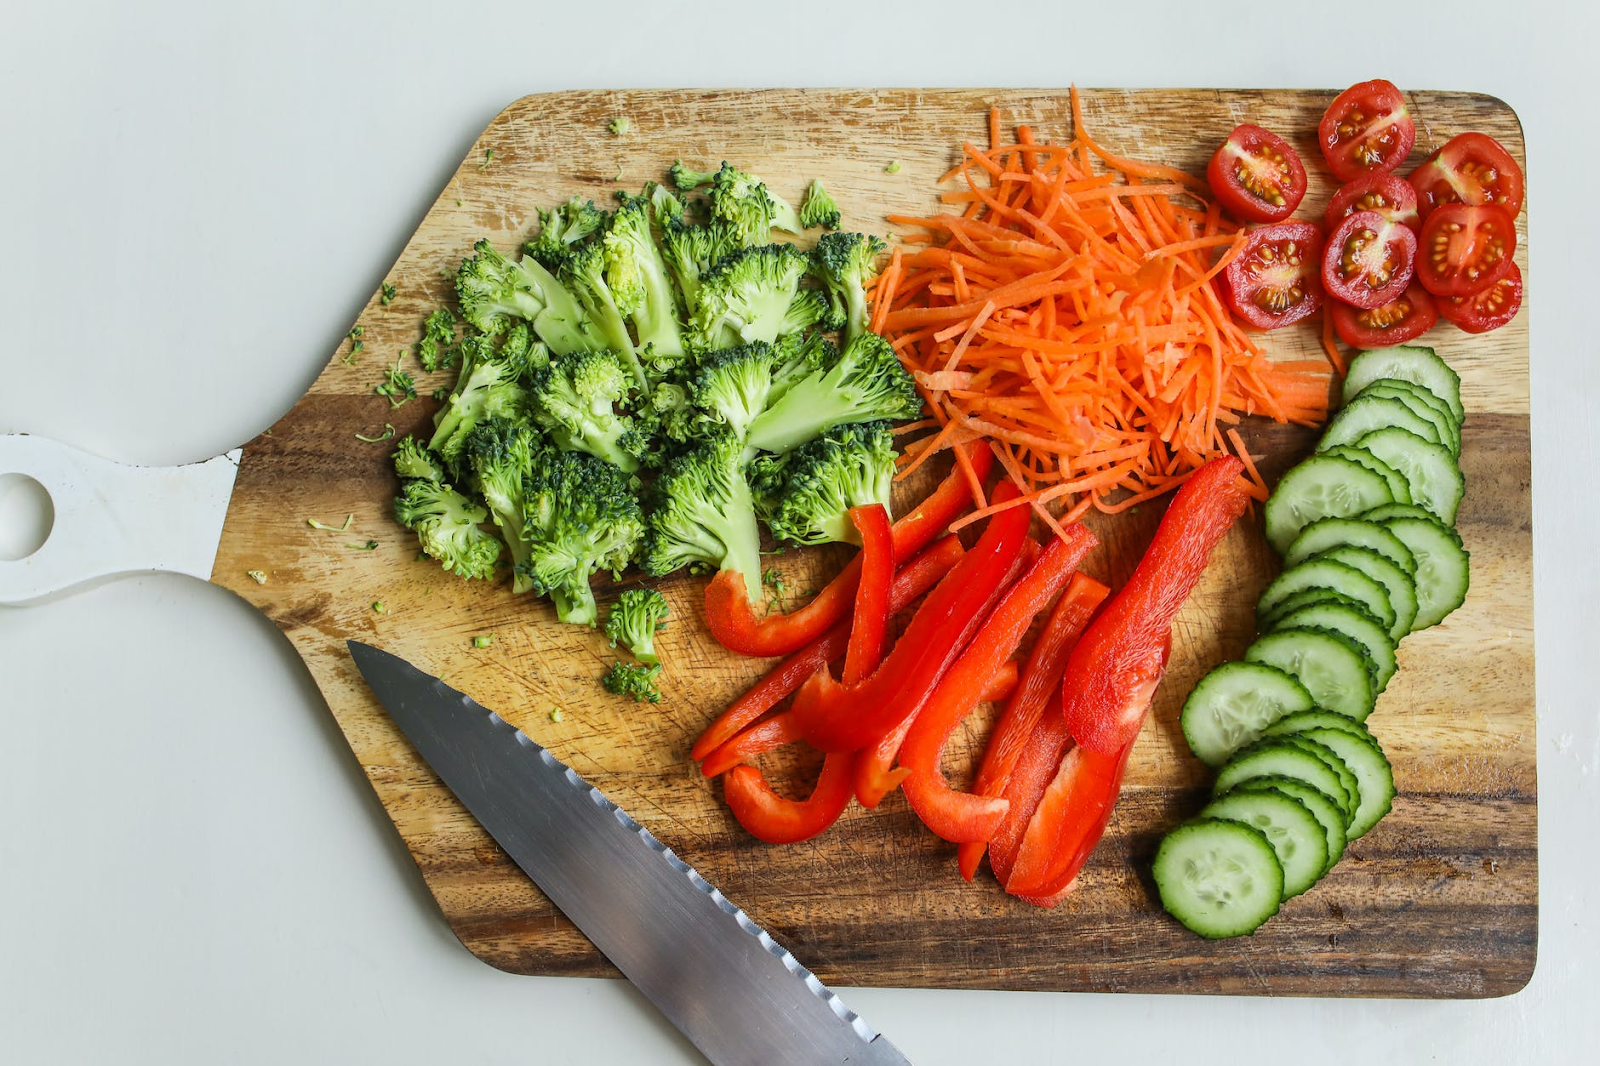 chopping board full of healthy food such as broccoli, carrots strips, cucumber, peppers and tomatoes